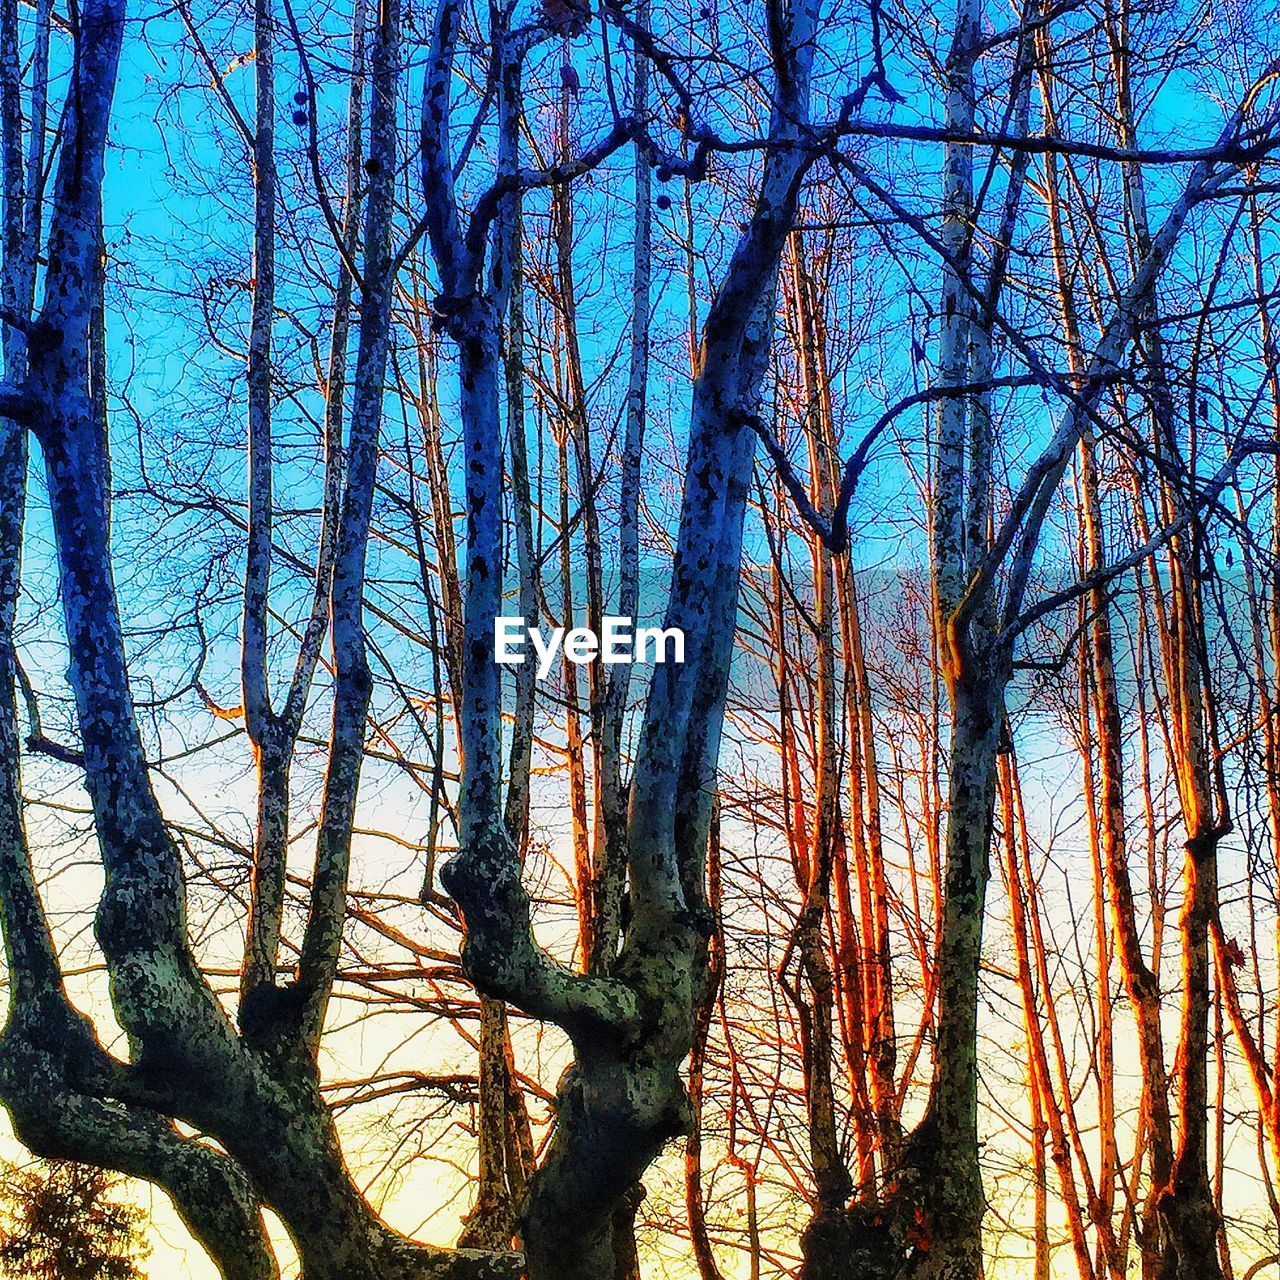 tree, plant, sky, tranquility, nature, bare tree, no people, trunk, growth, beauty in nature, branch, tree trunk, low angle view, forest, blue, tranquil scene, scenics - nature, day, land, outdoors, woodland